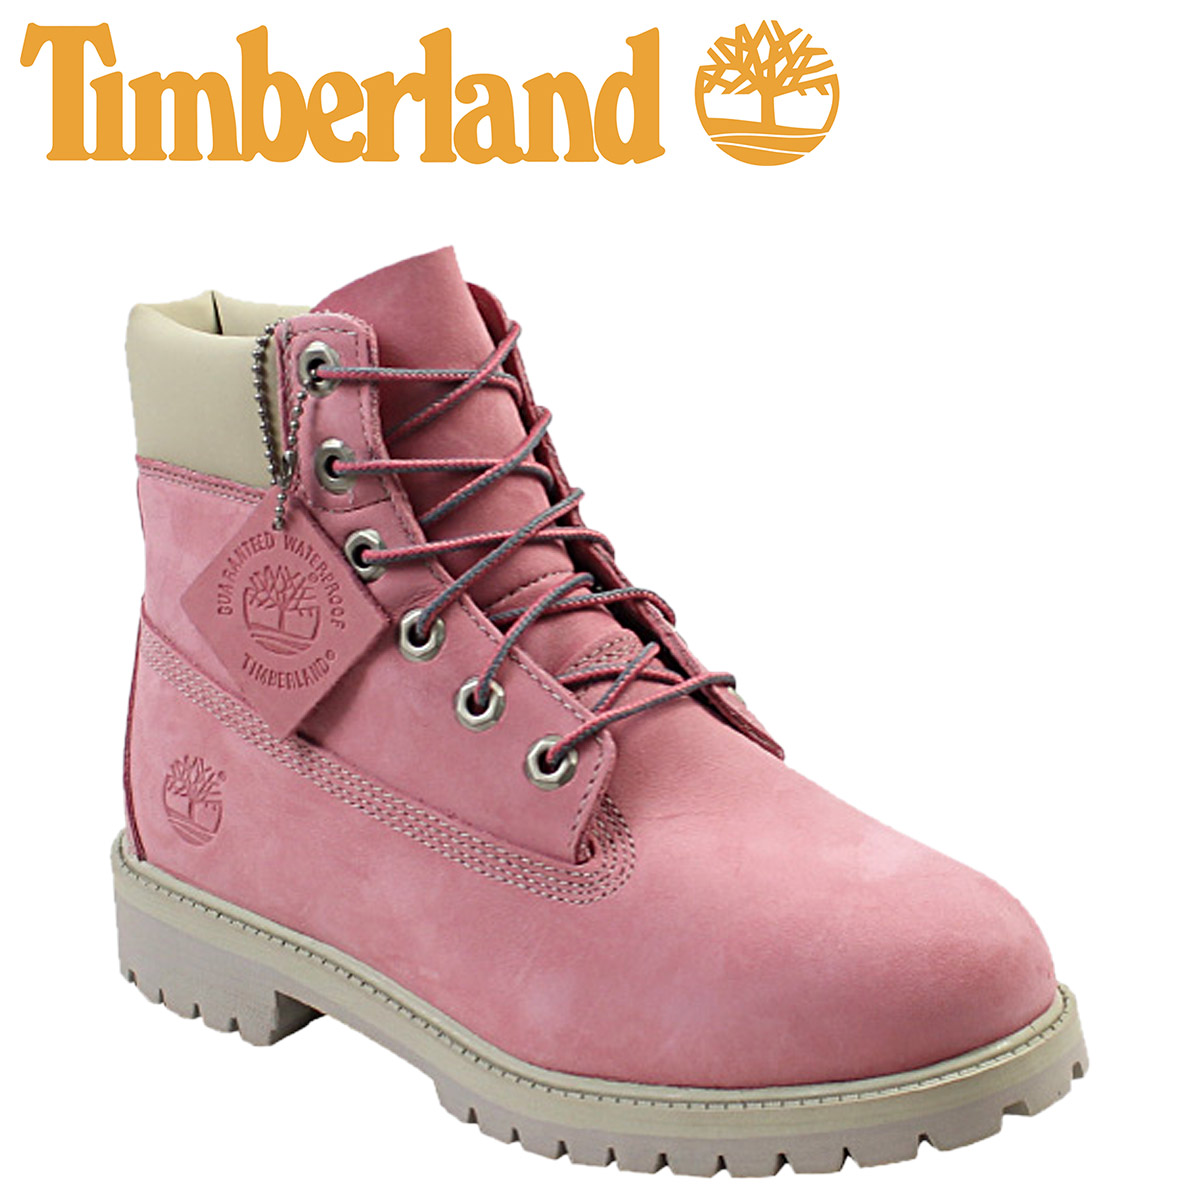 7d2fe3940d78d Sugar Online Shop: Timberland Timberland kids Lady's youth 6 inches ...